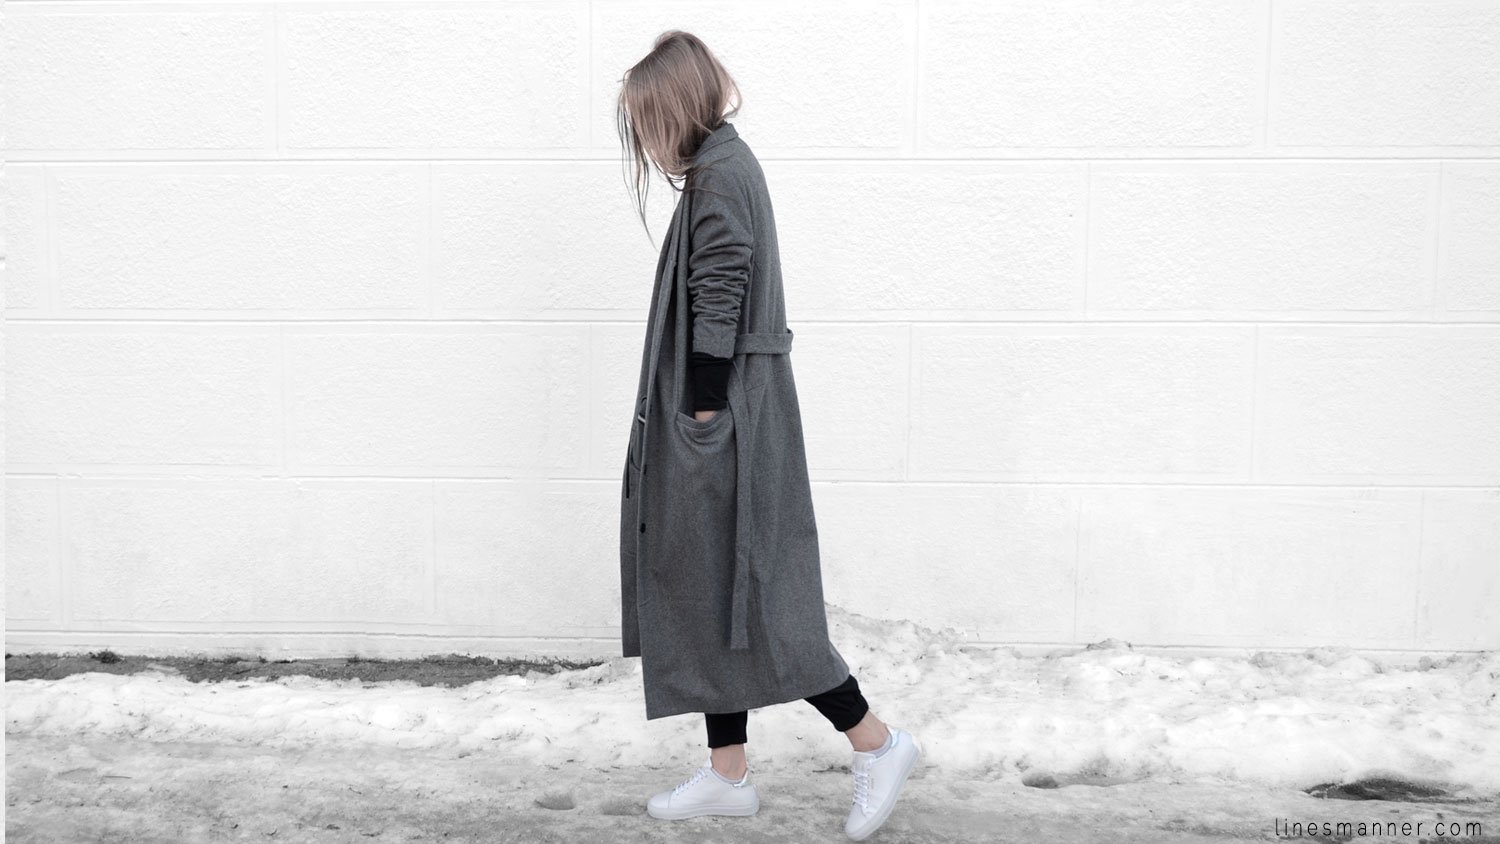 Lines-Manner-Simplicity-Neutral-Palette-Functional-Versatile-Timeless-Grey-Winter_Coat-Details-Essentials-Minimal-Basics-1